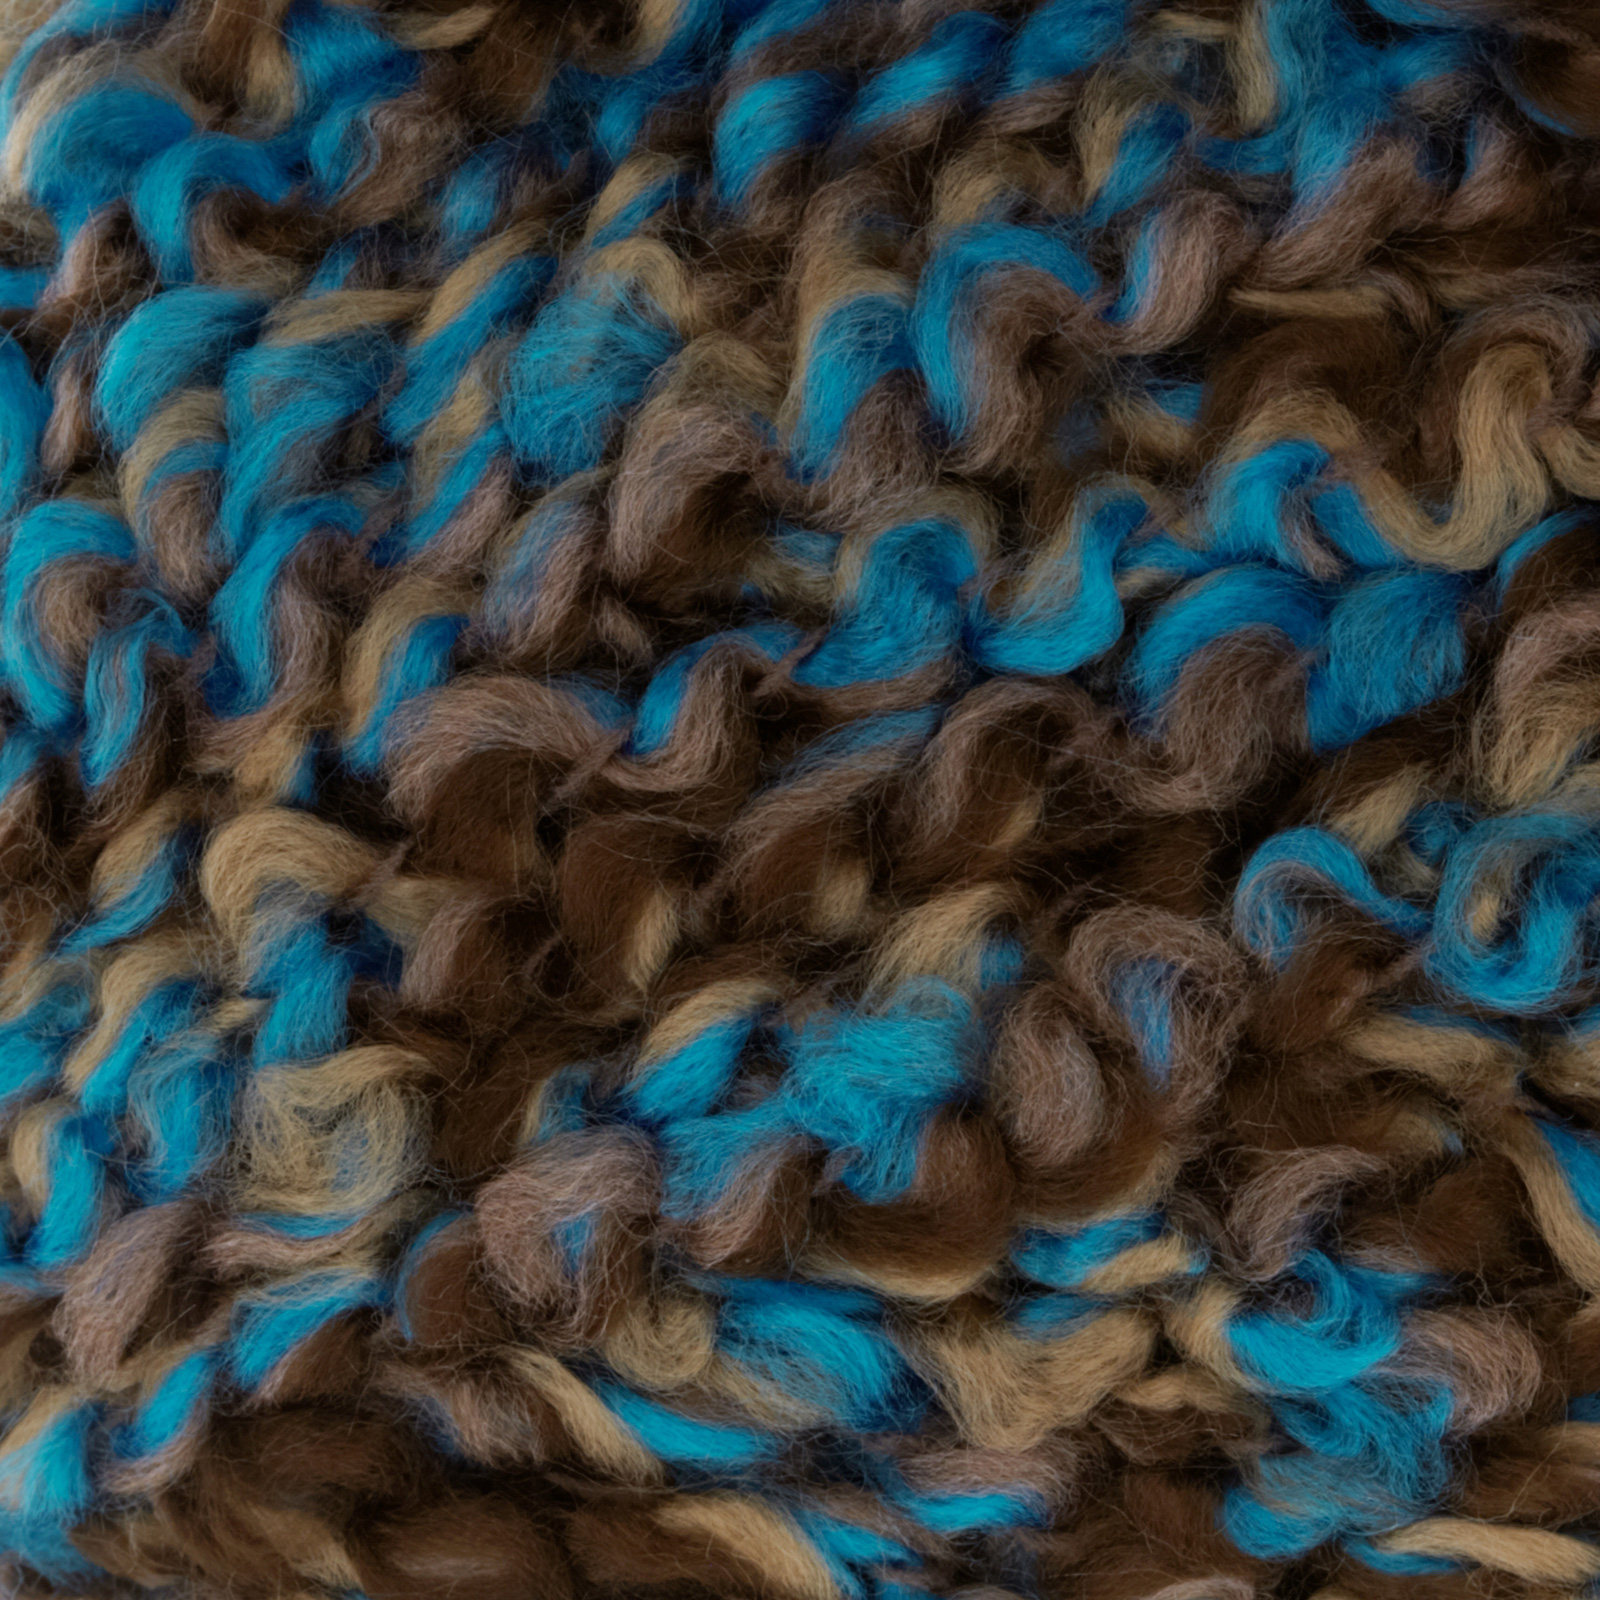 Bernat Soft Boucle' Yarn (46202) Teal Twist